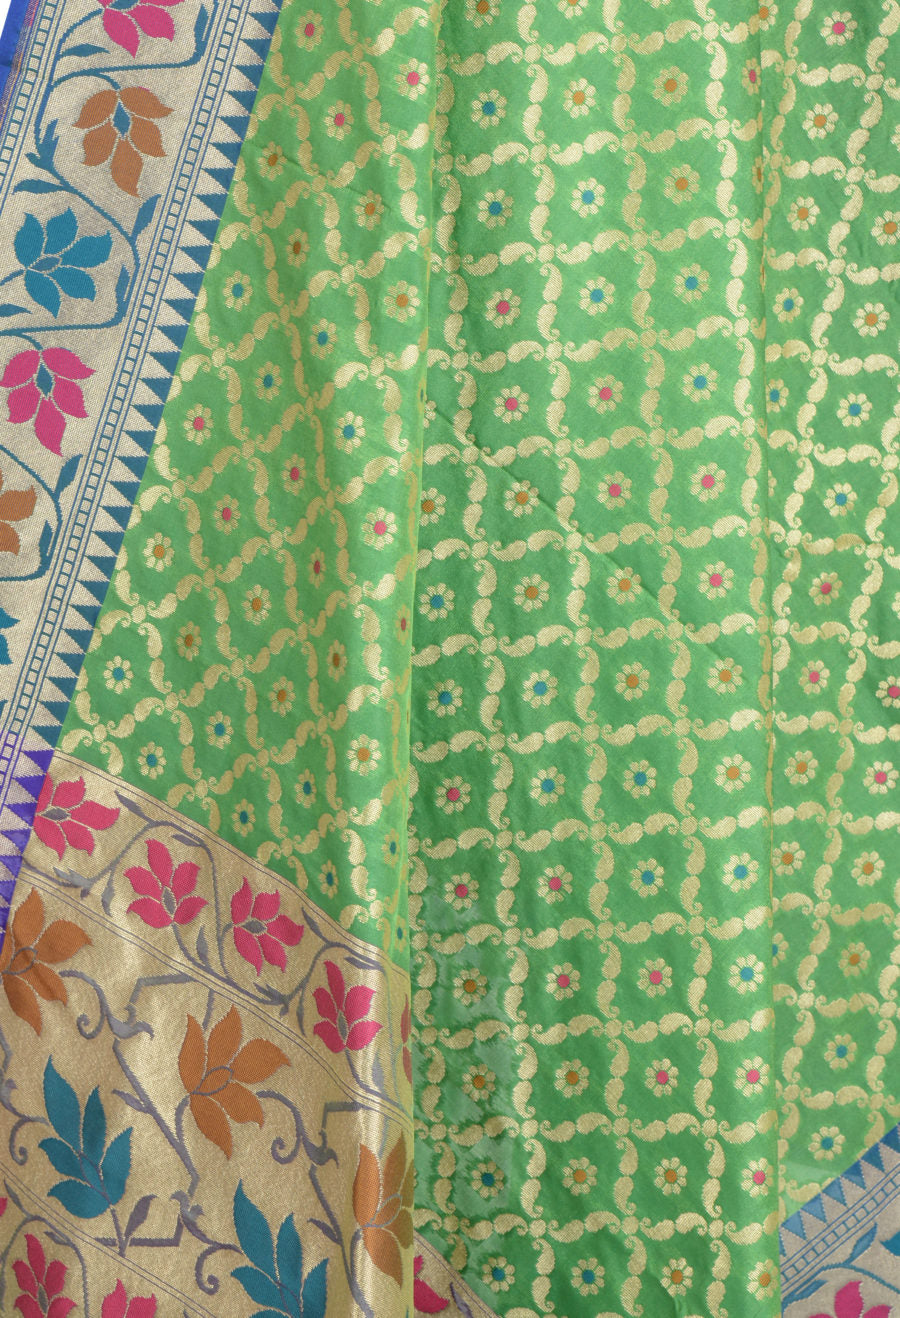 Green Banarasi Dupatta with leaf jaal and floral motifs (2) Closeup